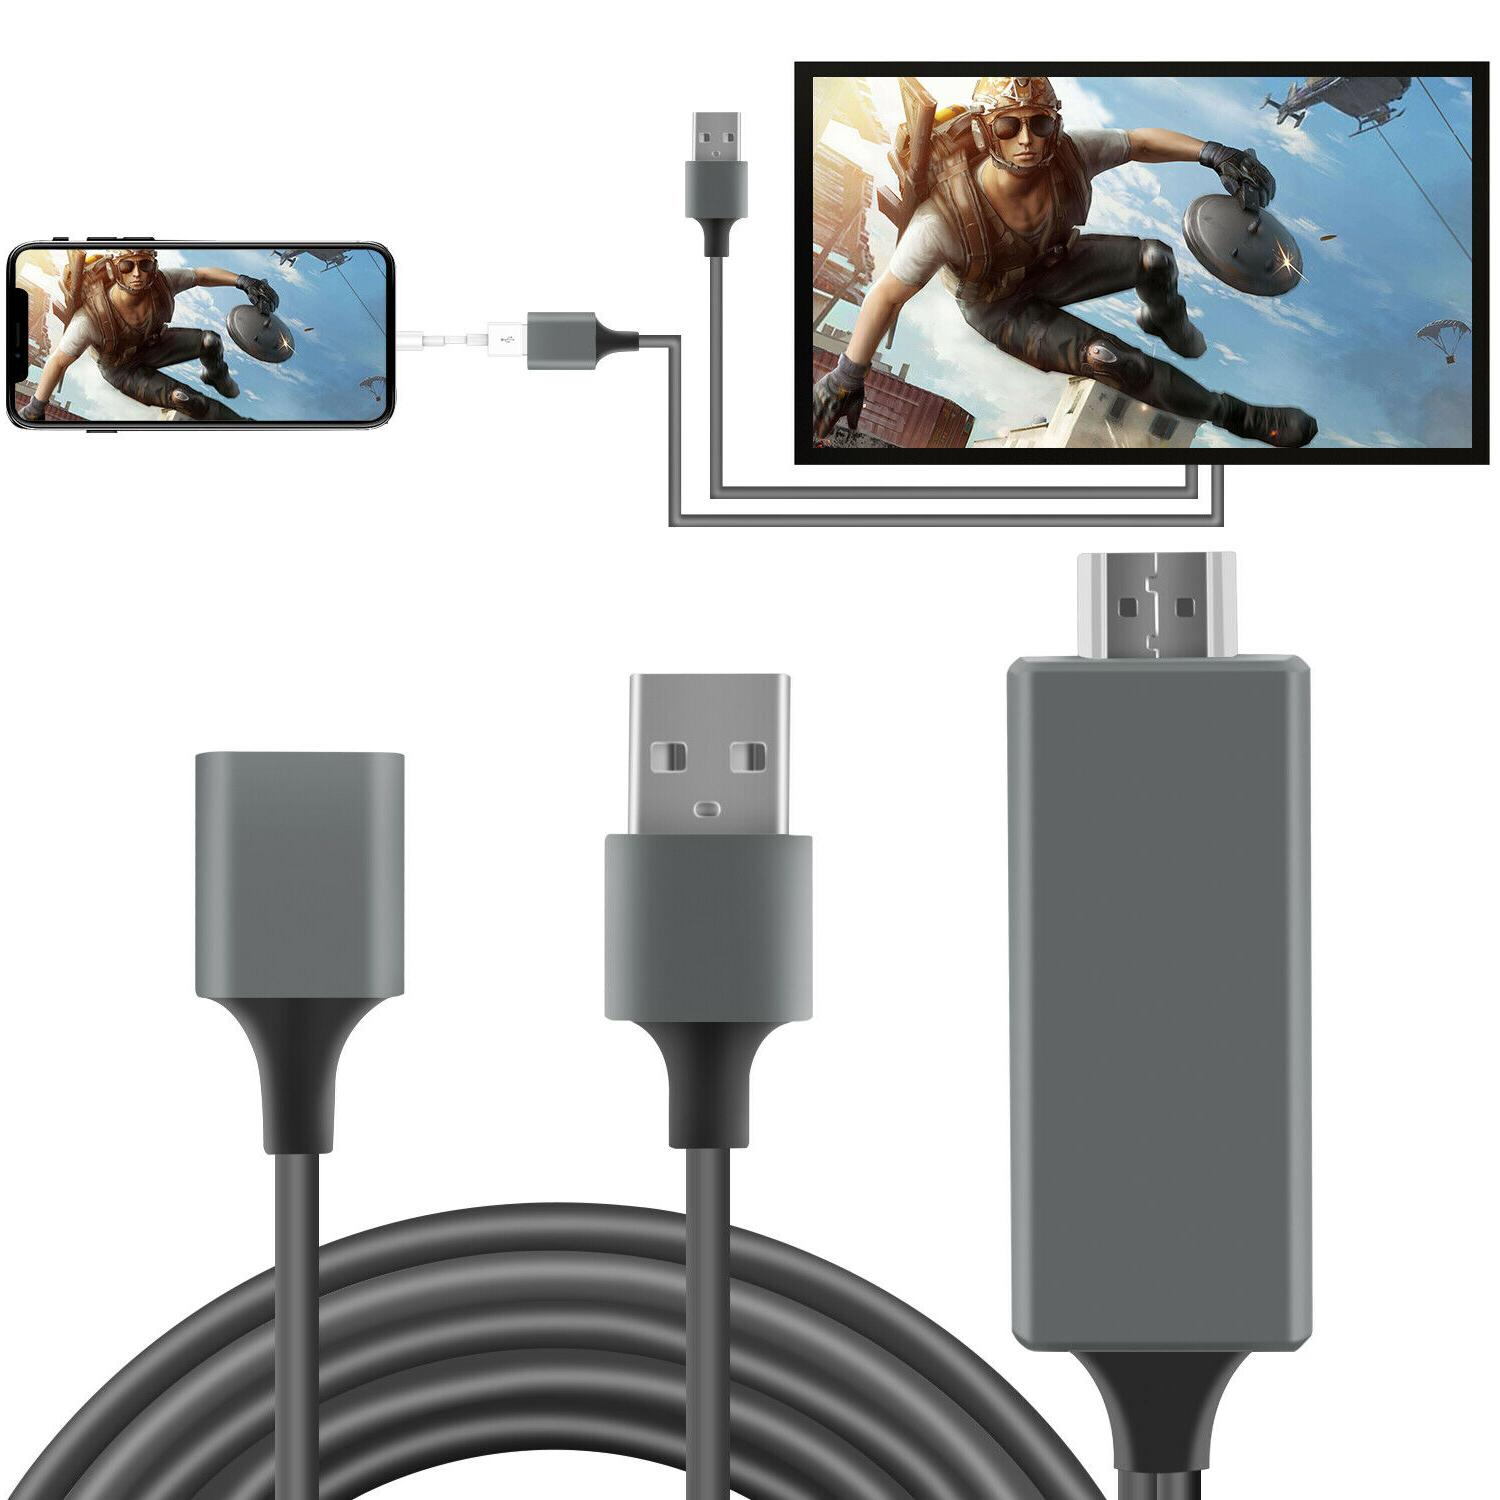 1080p hd hdmi mirroring smart cable phone